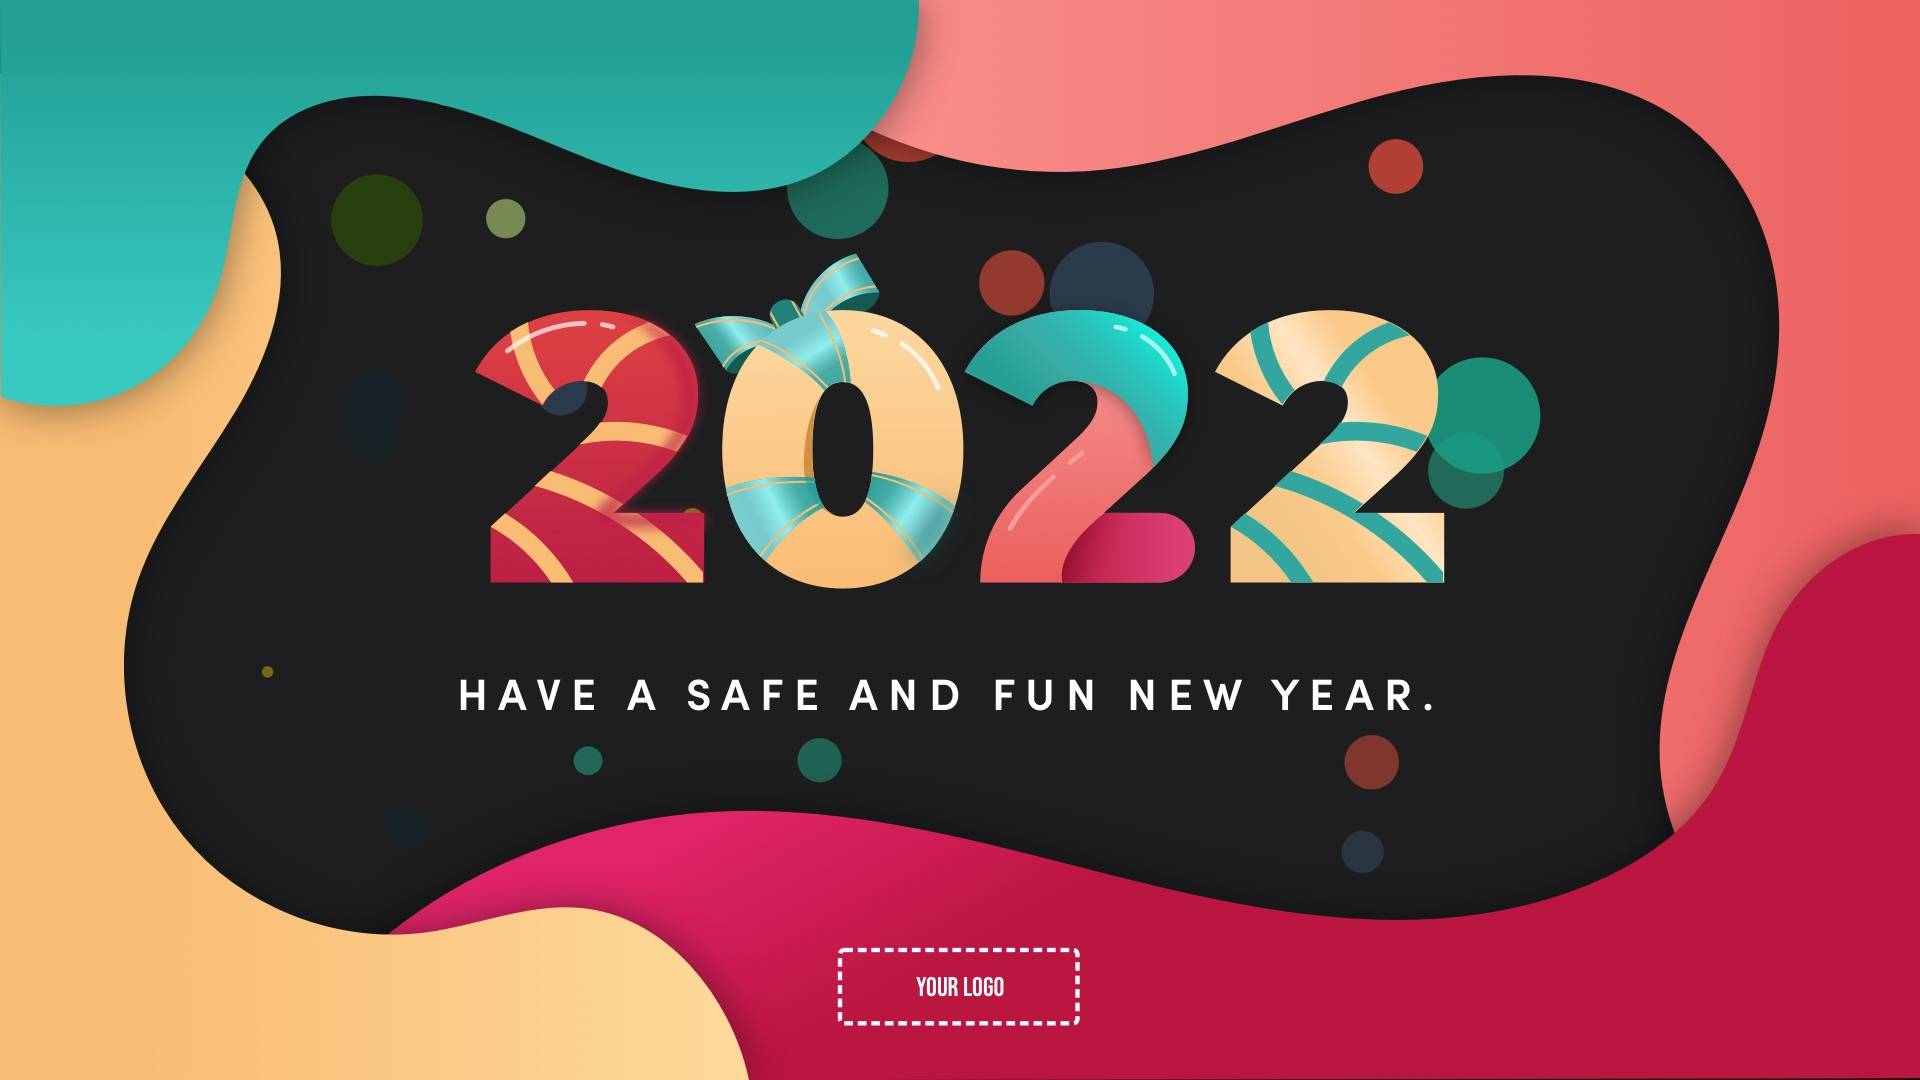 New Year Wishes Digital Signage Template